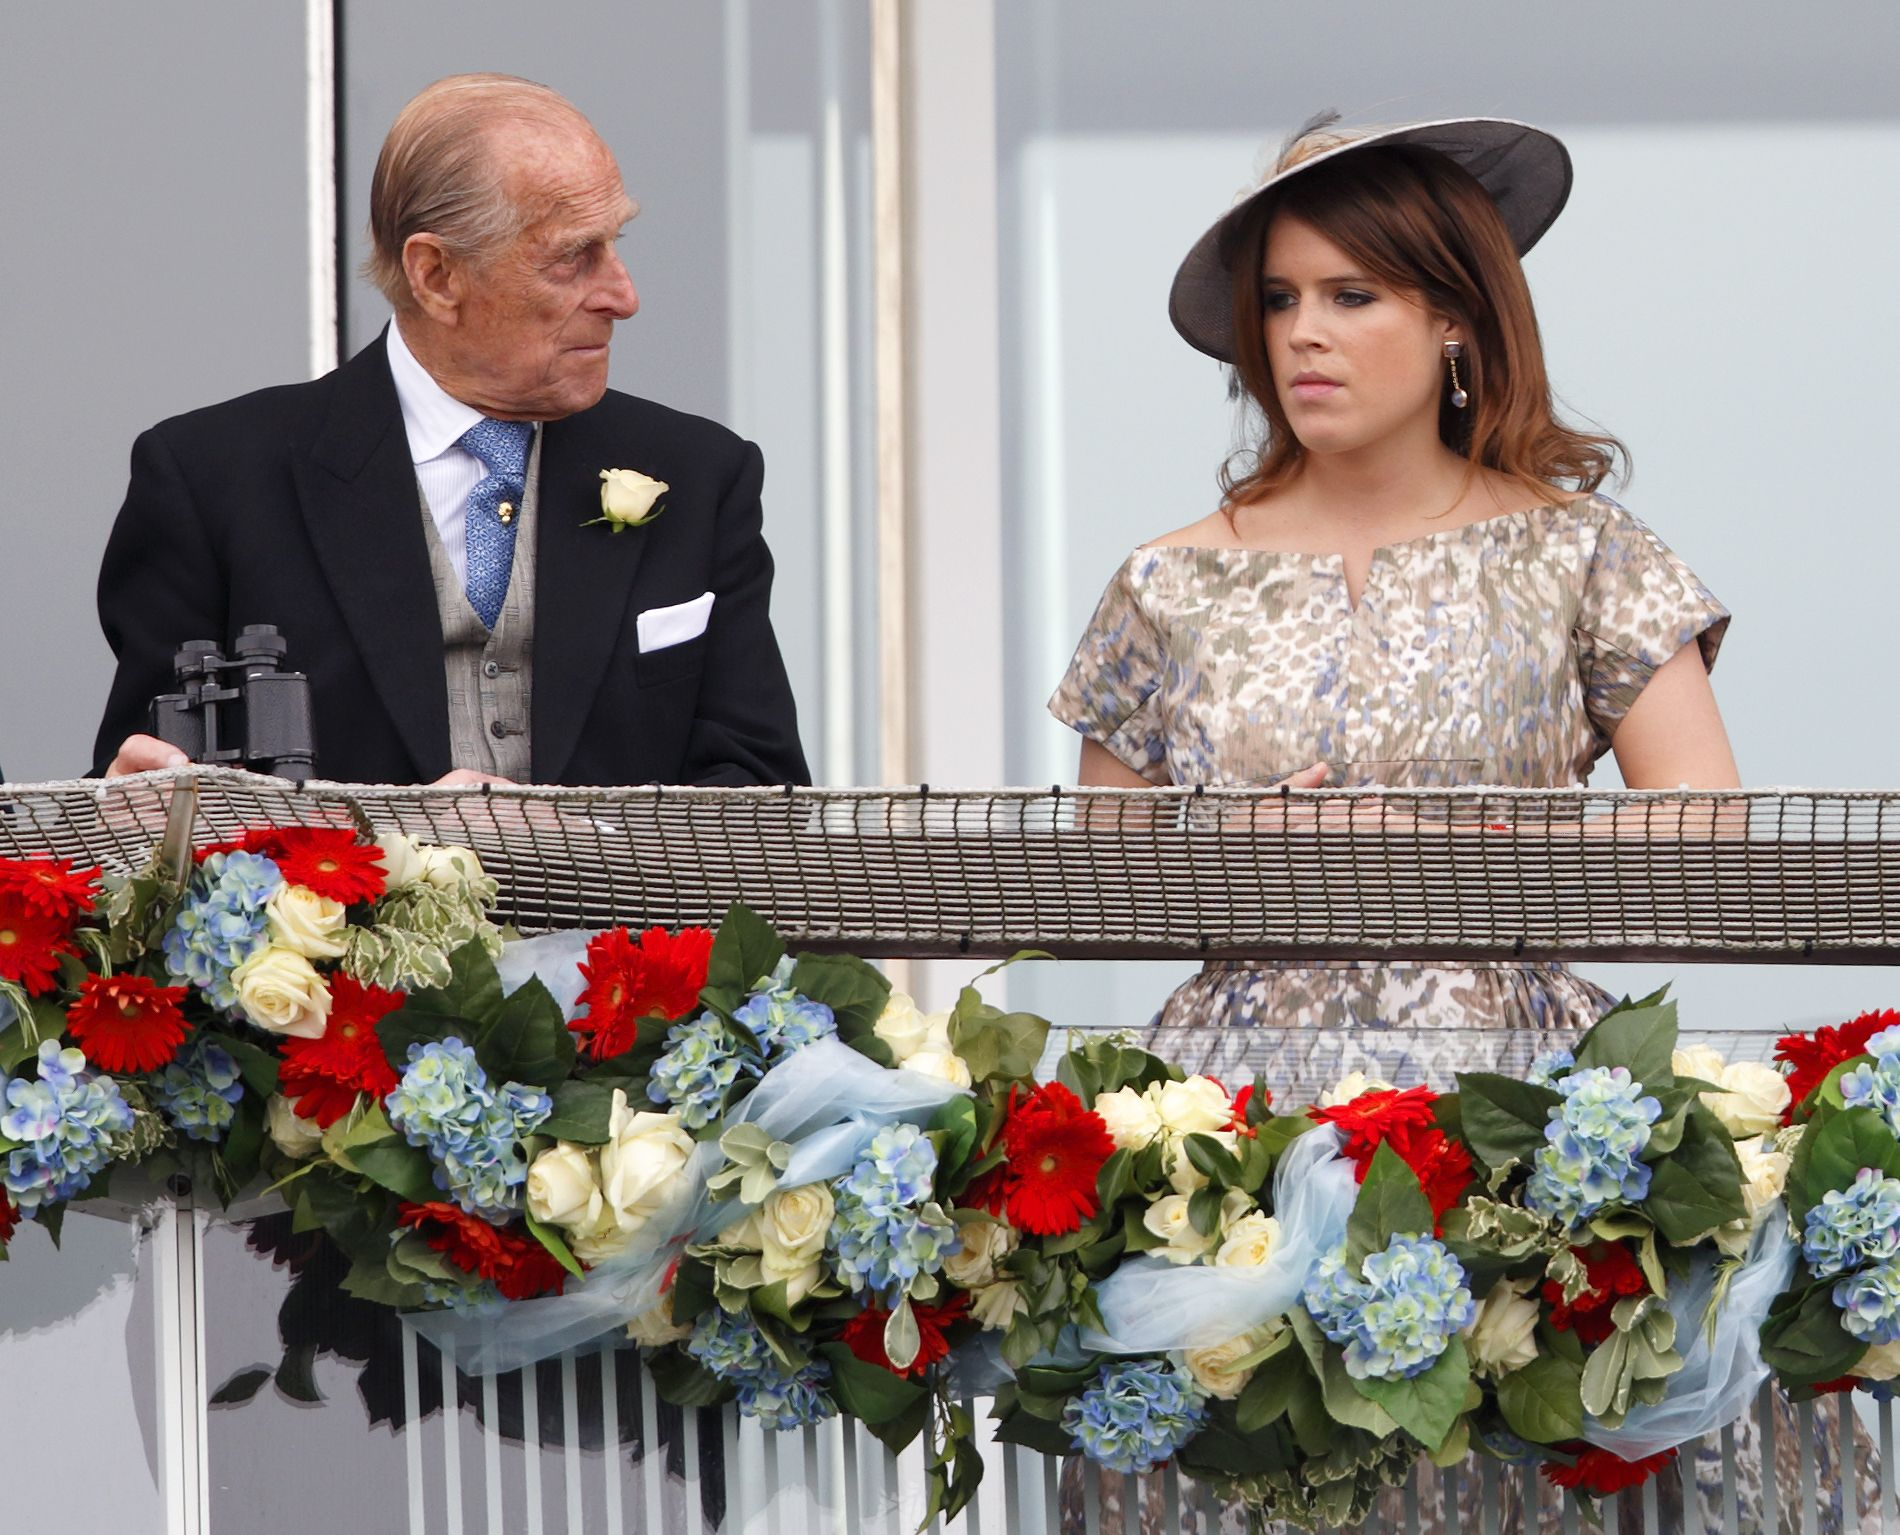 Princess Eugenie's personal message to Prince Philip on what would have been his 100th birthday